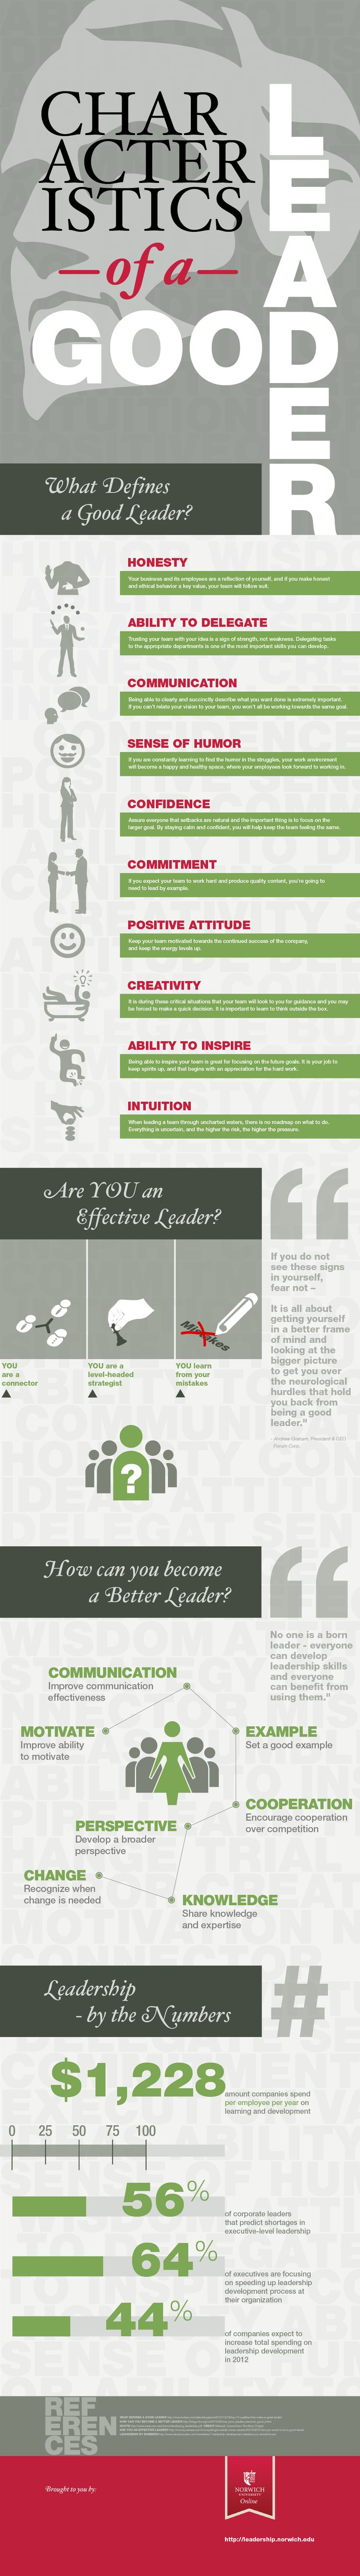 Characteristics of a Good Leader [Infographic] image Characteristics of a Good Leader 1000x7155